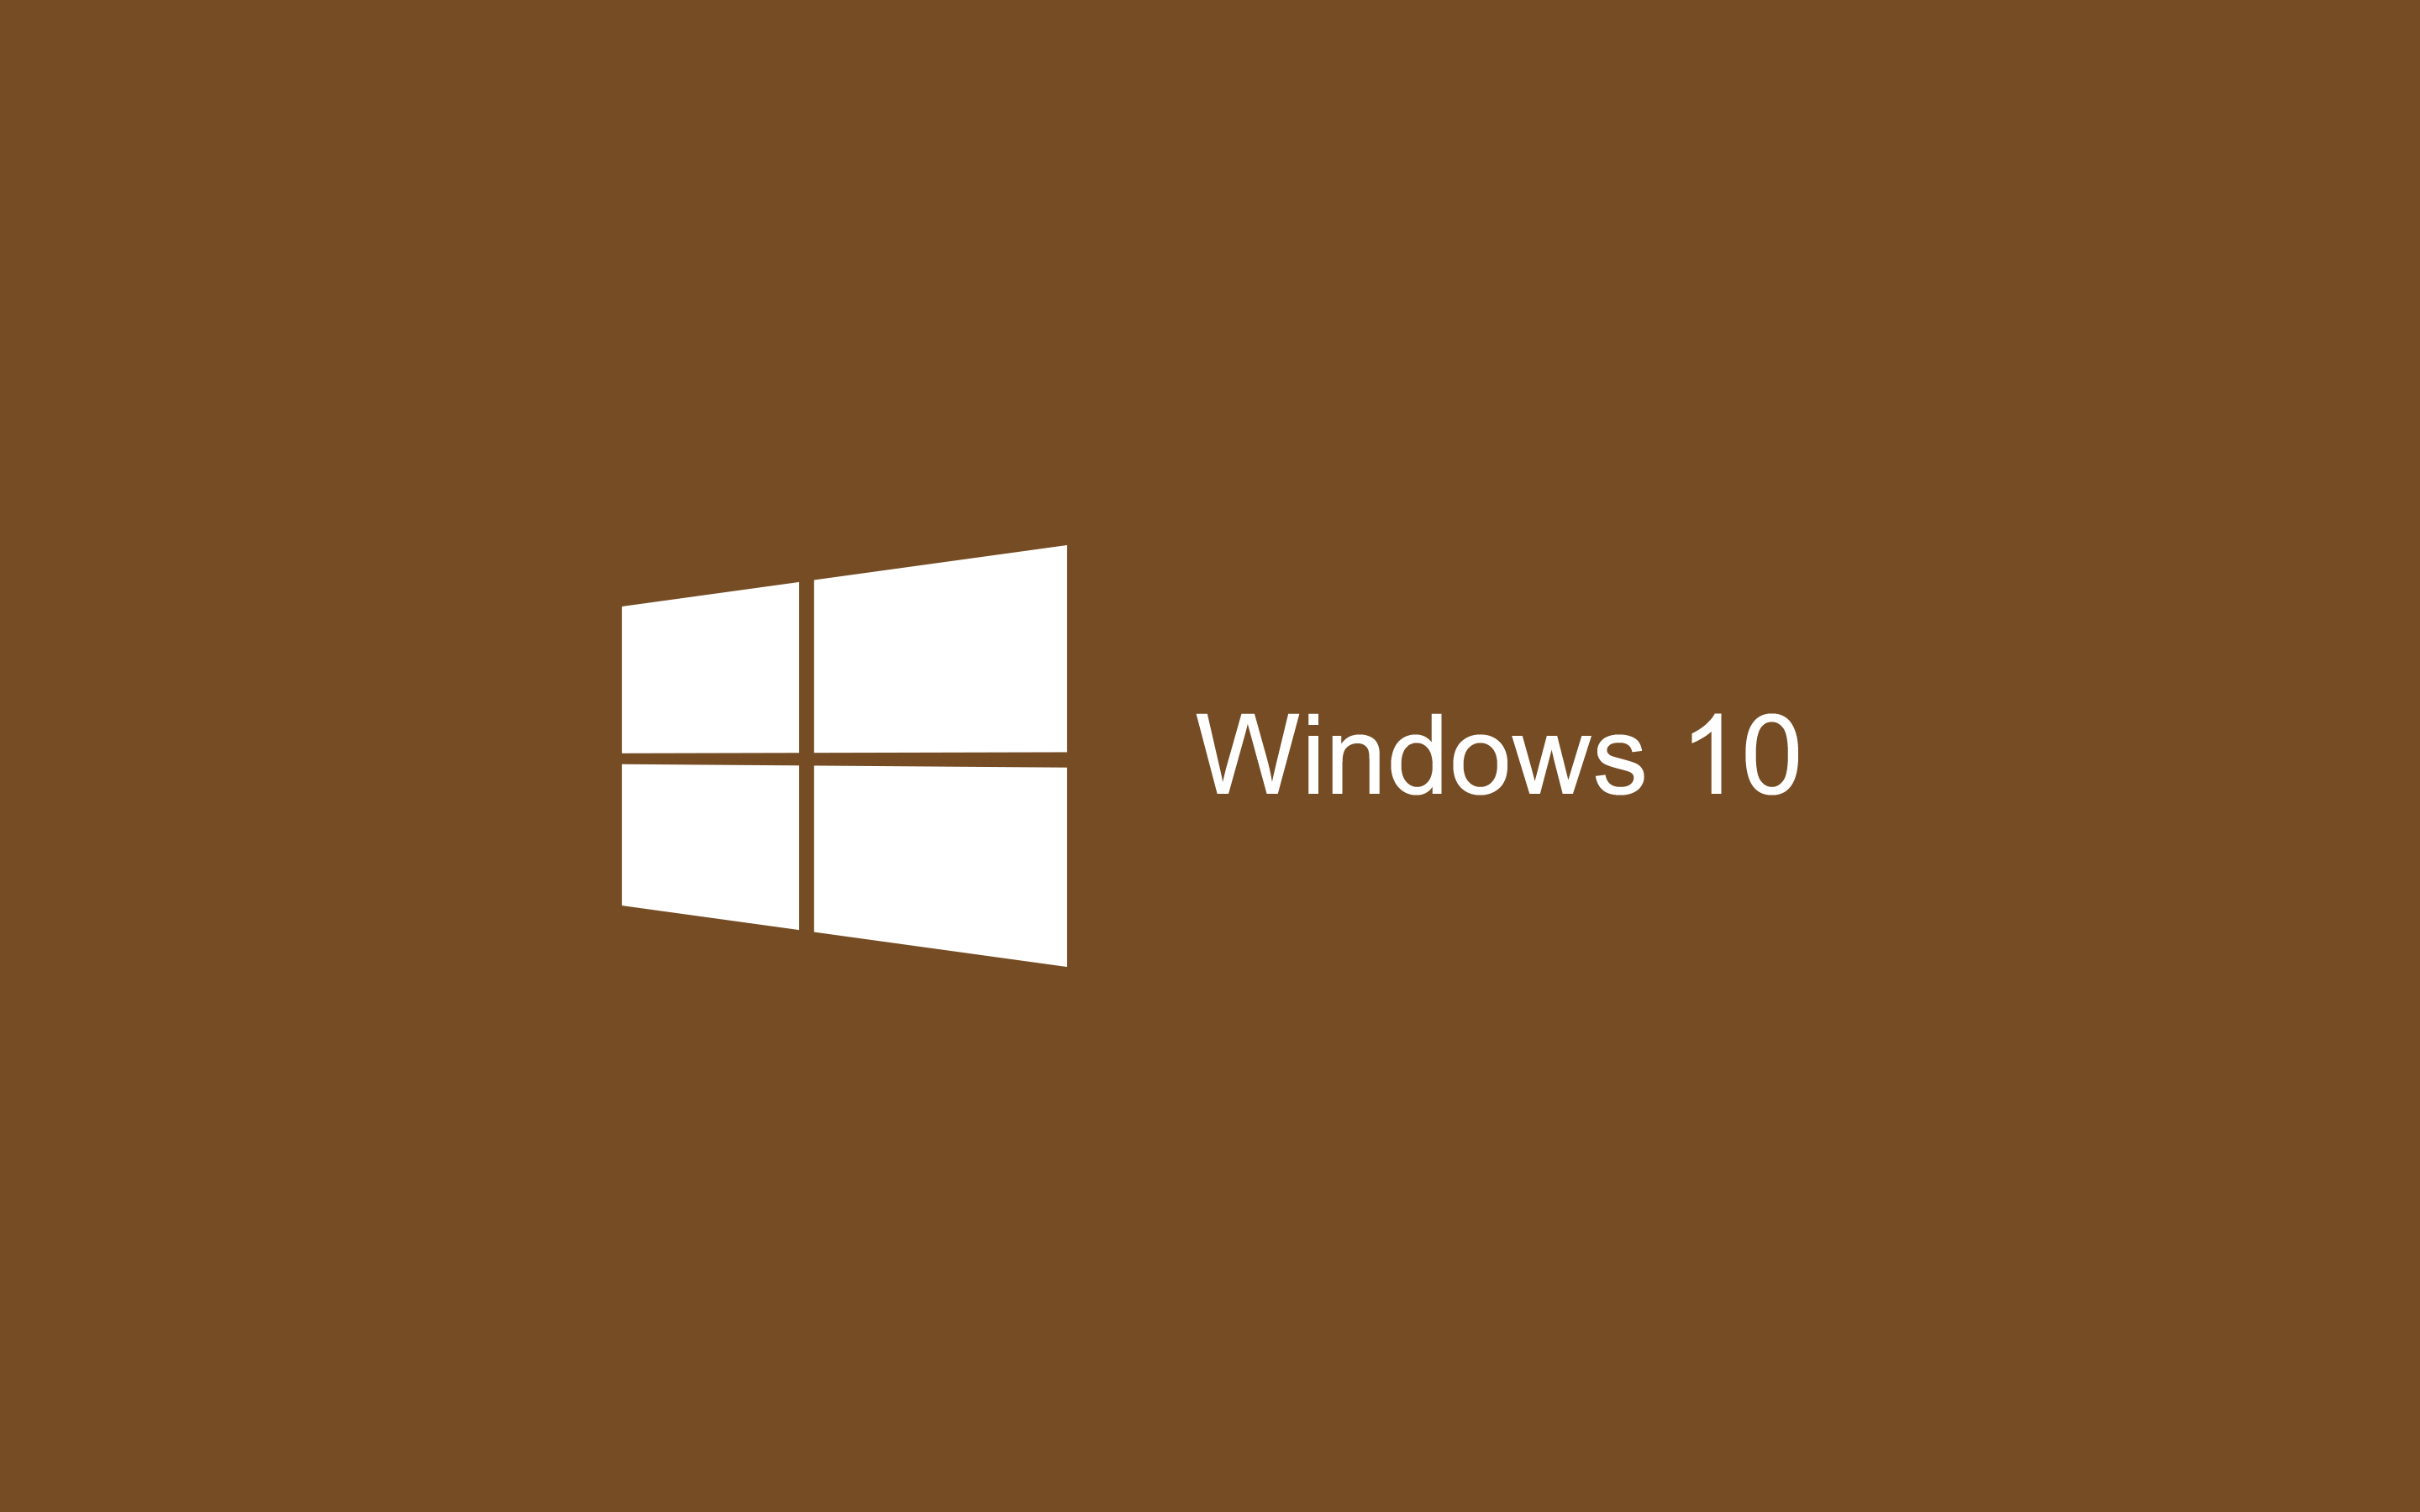 Windows-10-HD-Wallpaper-Plain-6